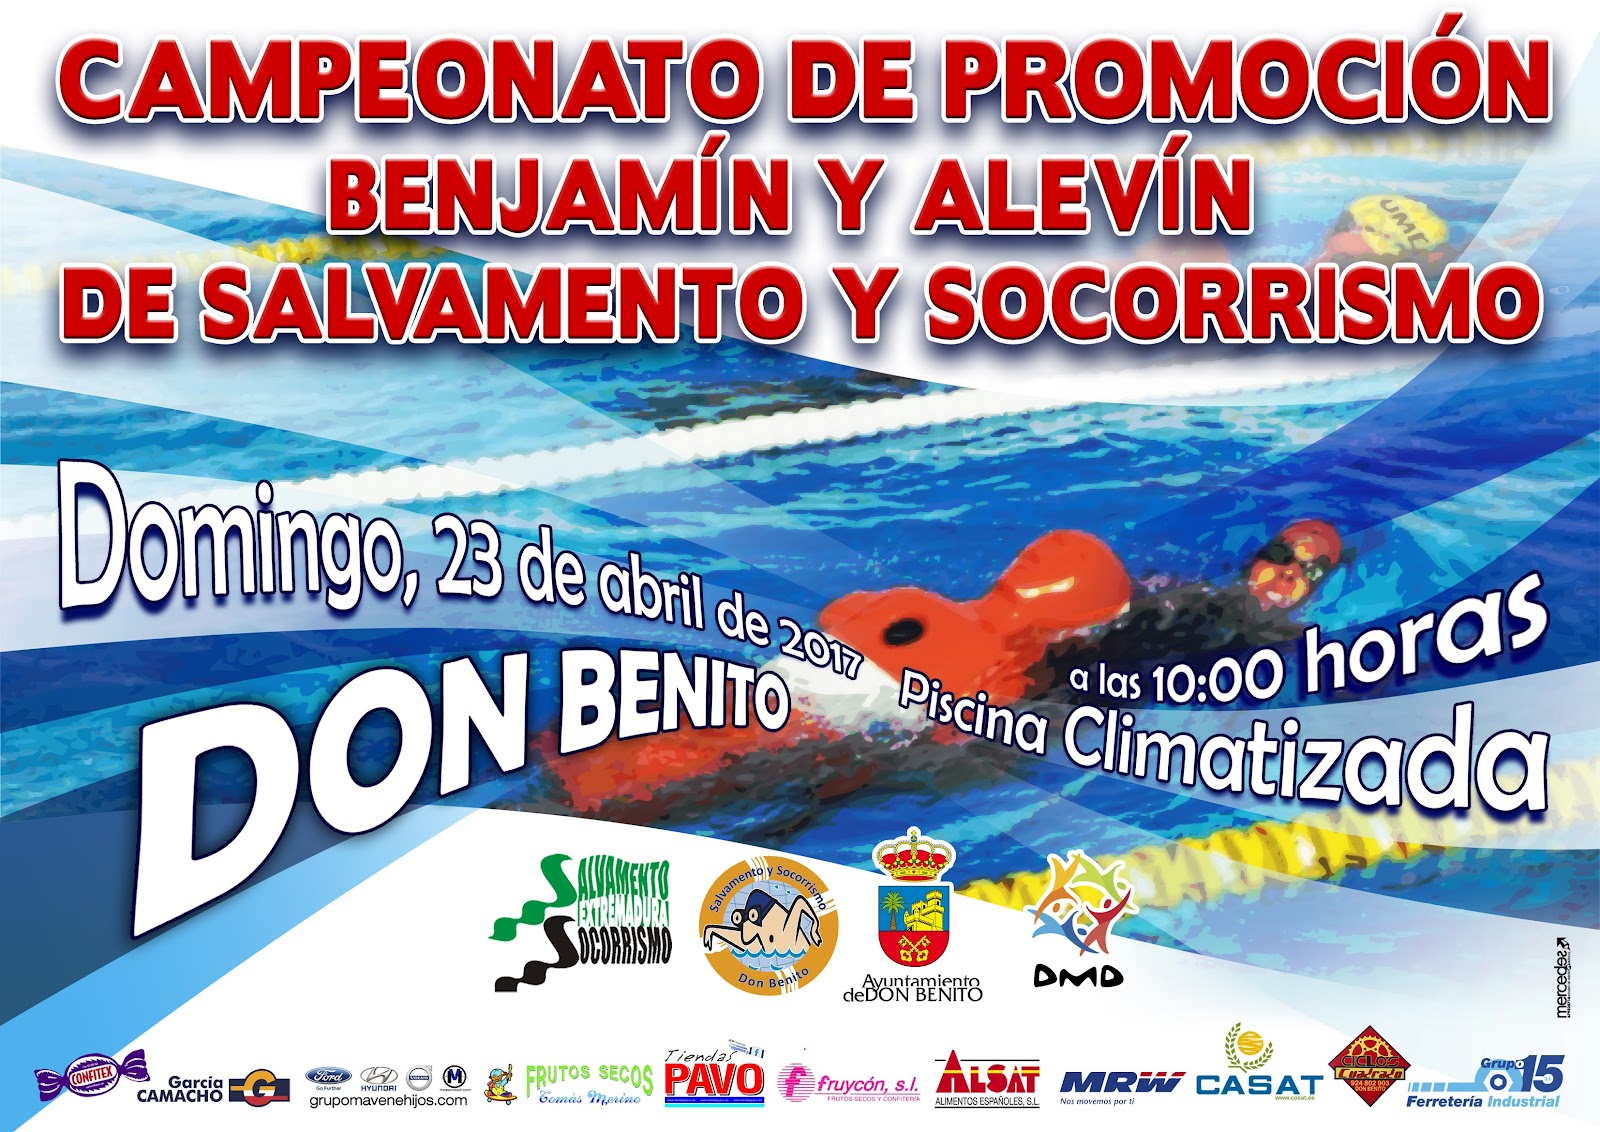 Club salvamento y socorrismo don benito campeonato de for Piscina climatizada merida